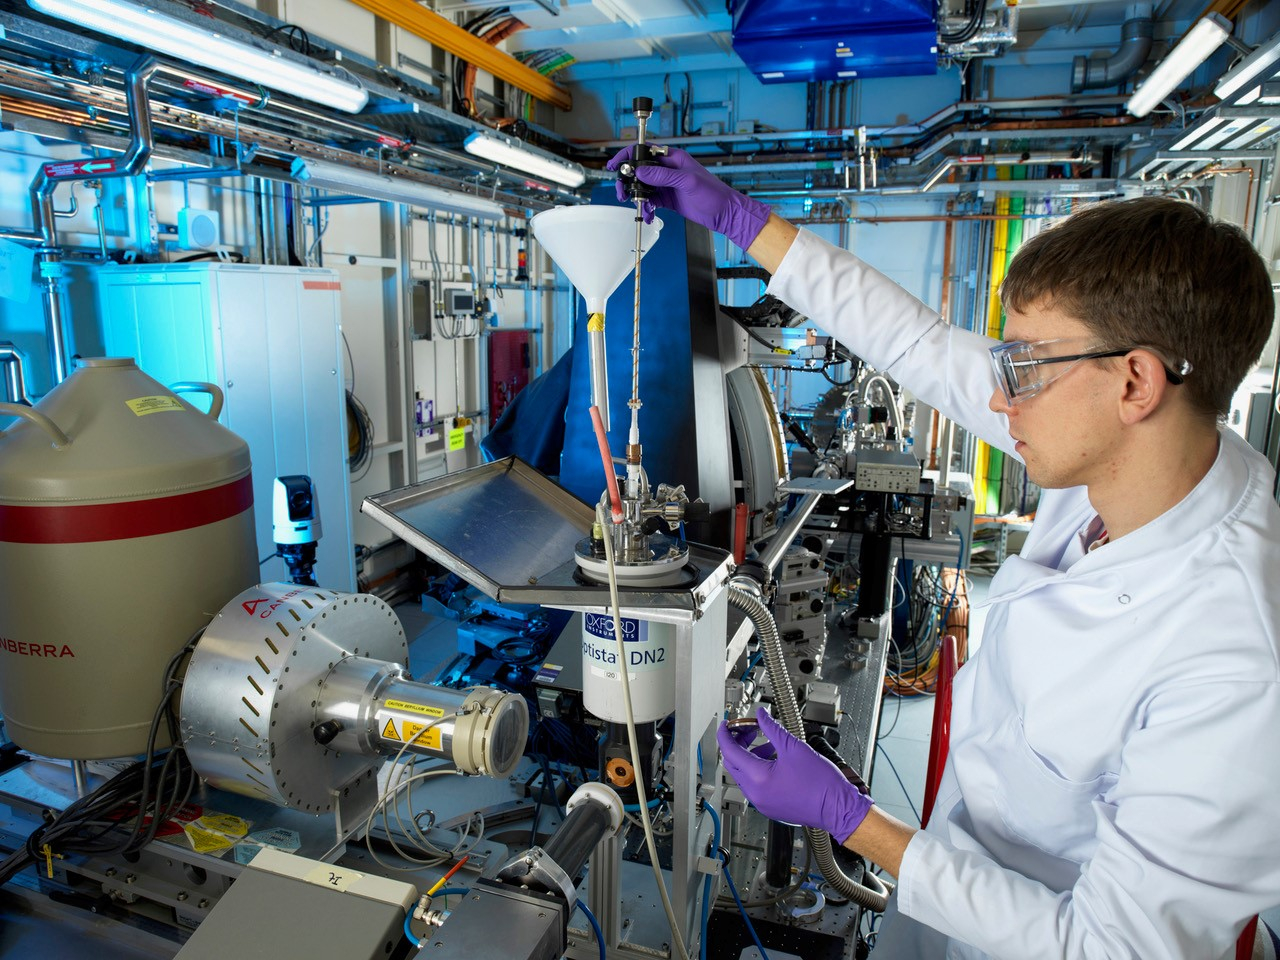 Researcher loading sample onto beamline